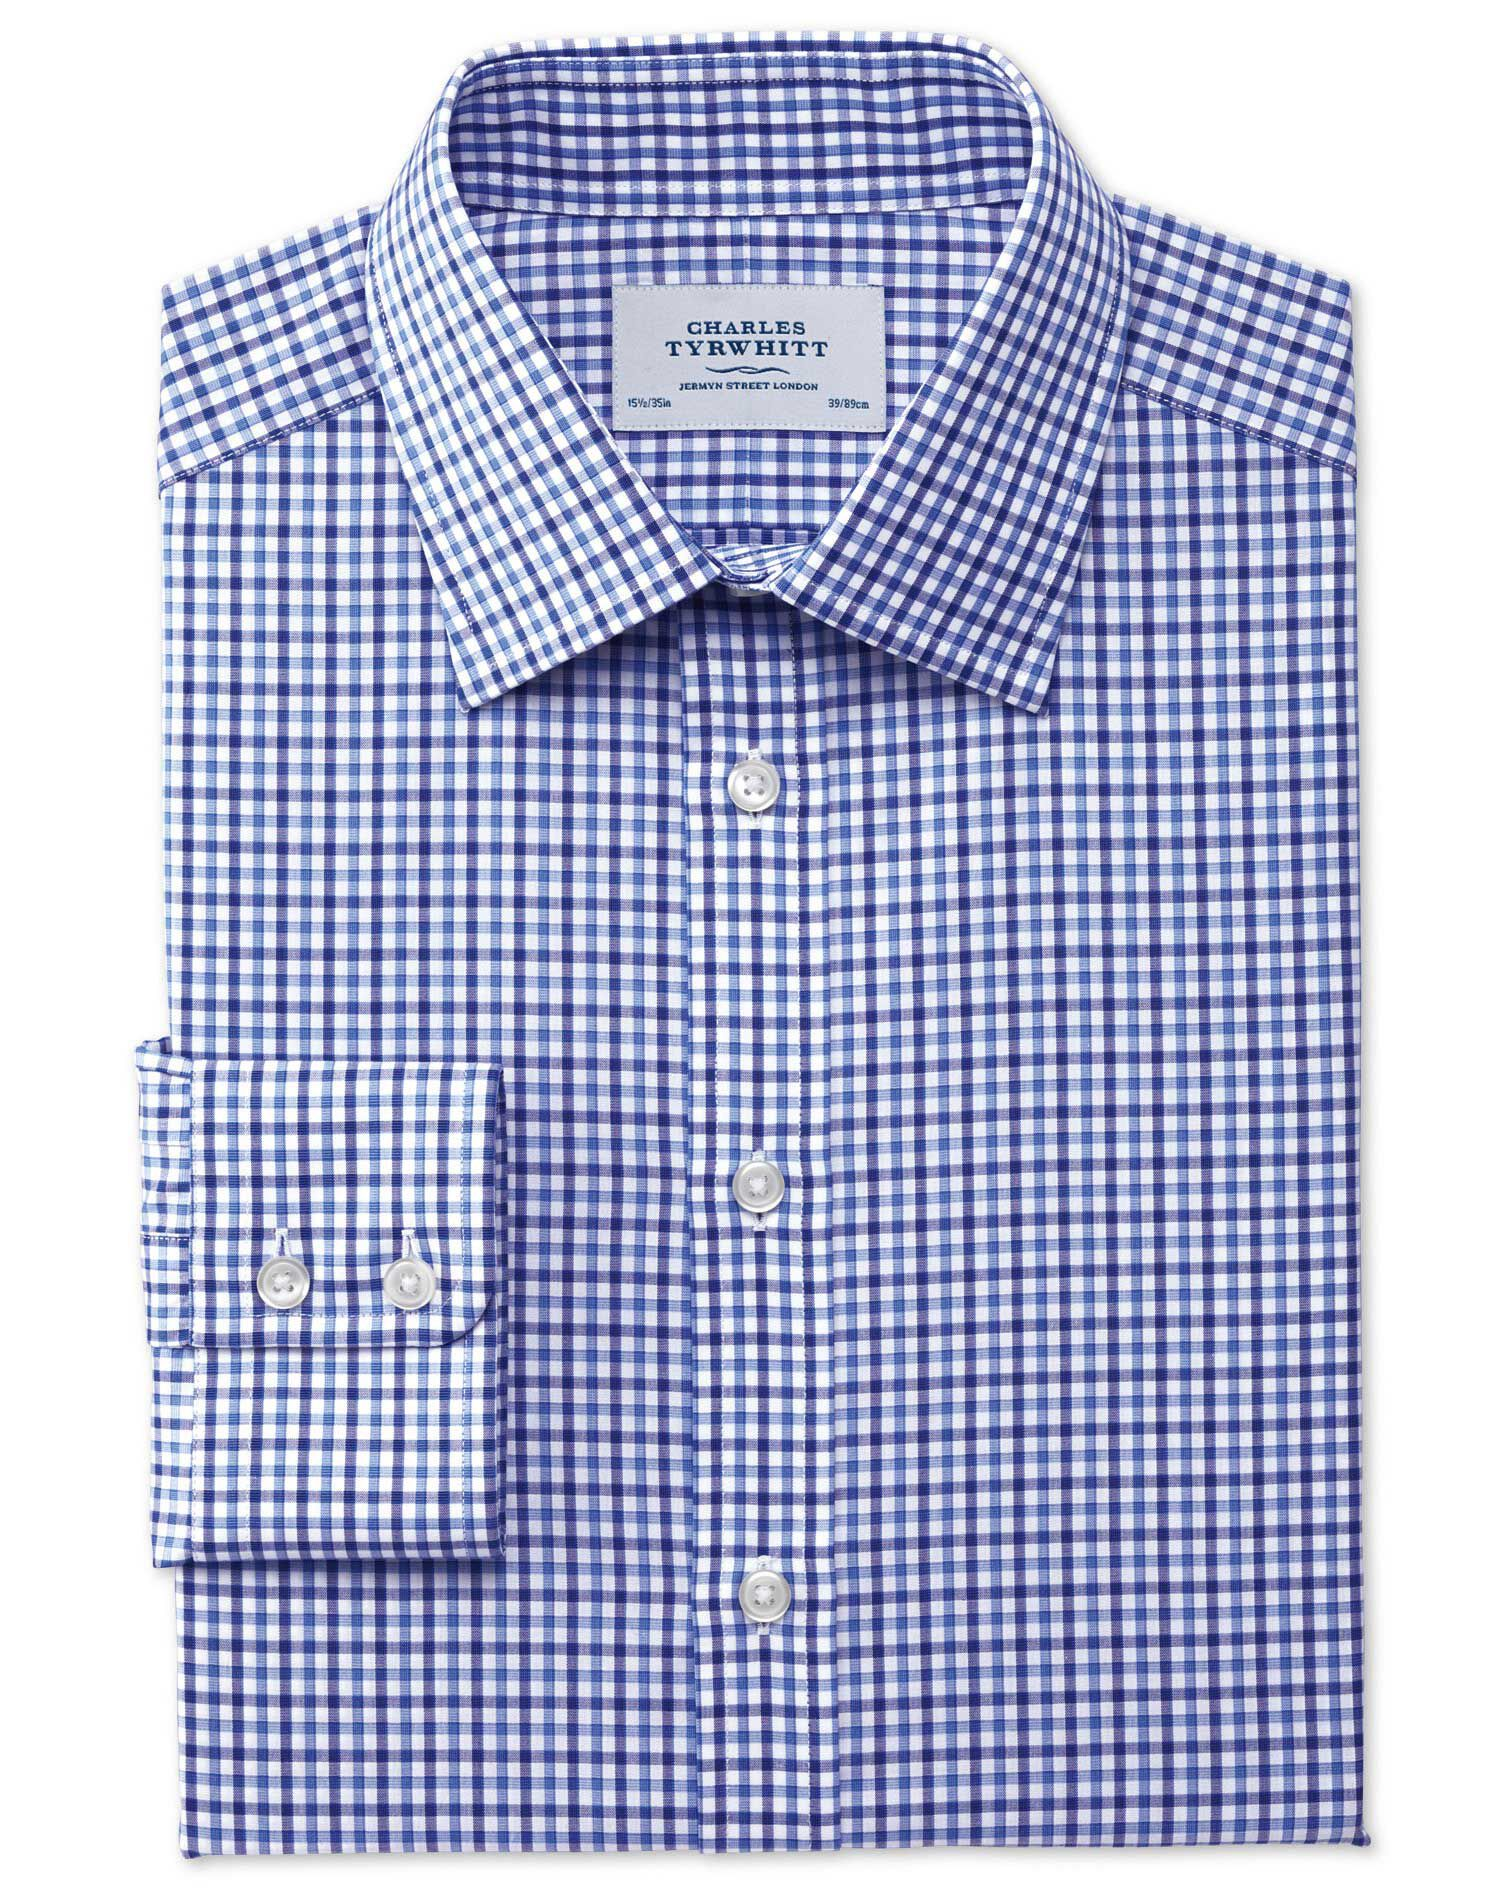 Classic Fit Egyptian Cotton Jermyn St Check Blue Formal Shirt Single Cuff Size 19/38 by Charles Tyrw